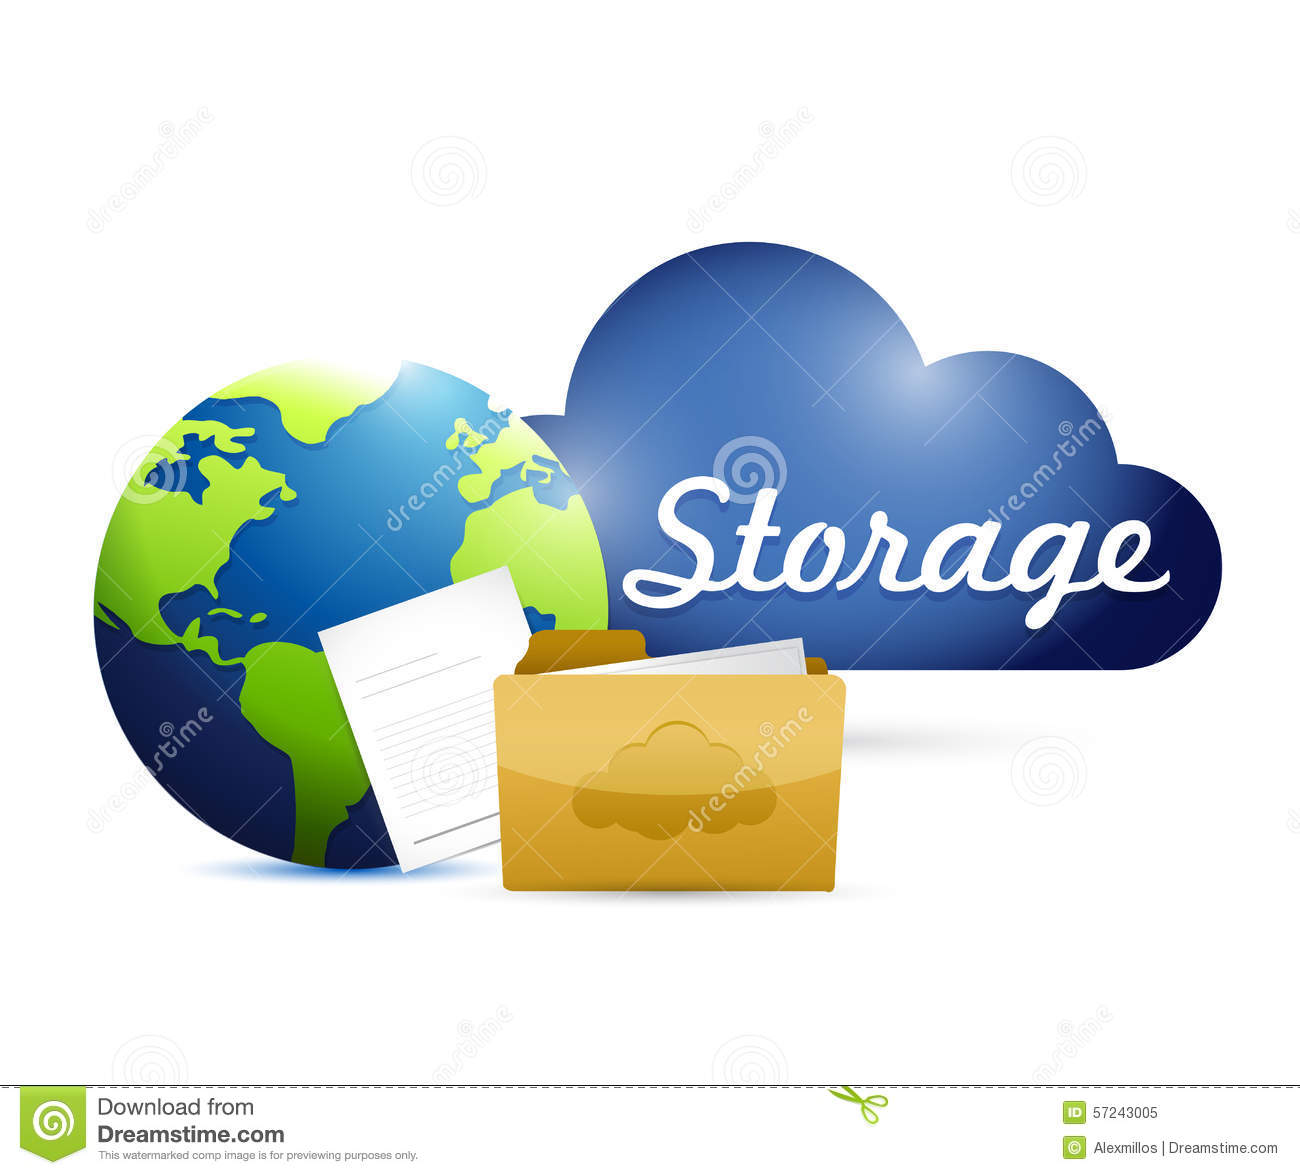 Research papers on data mining in cloud computing